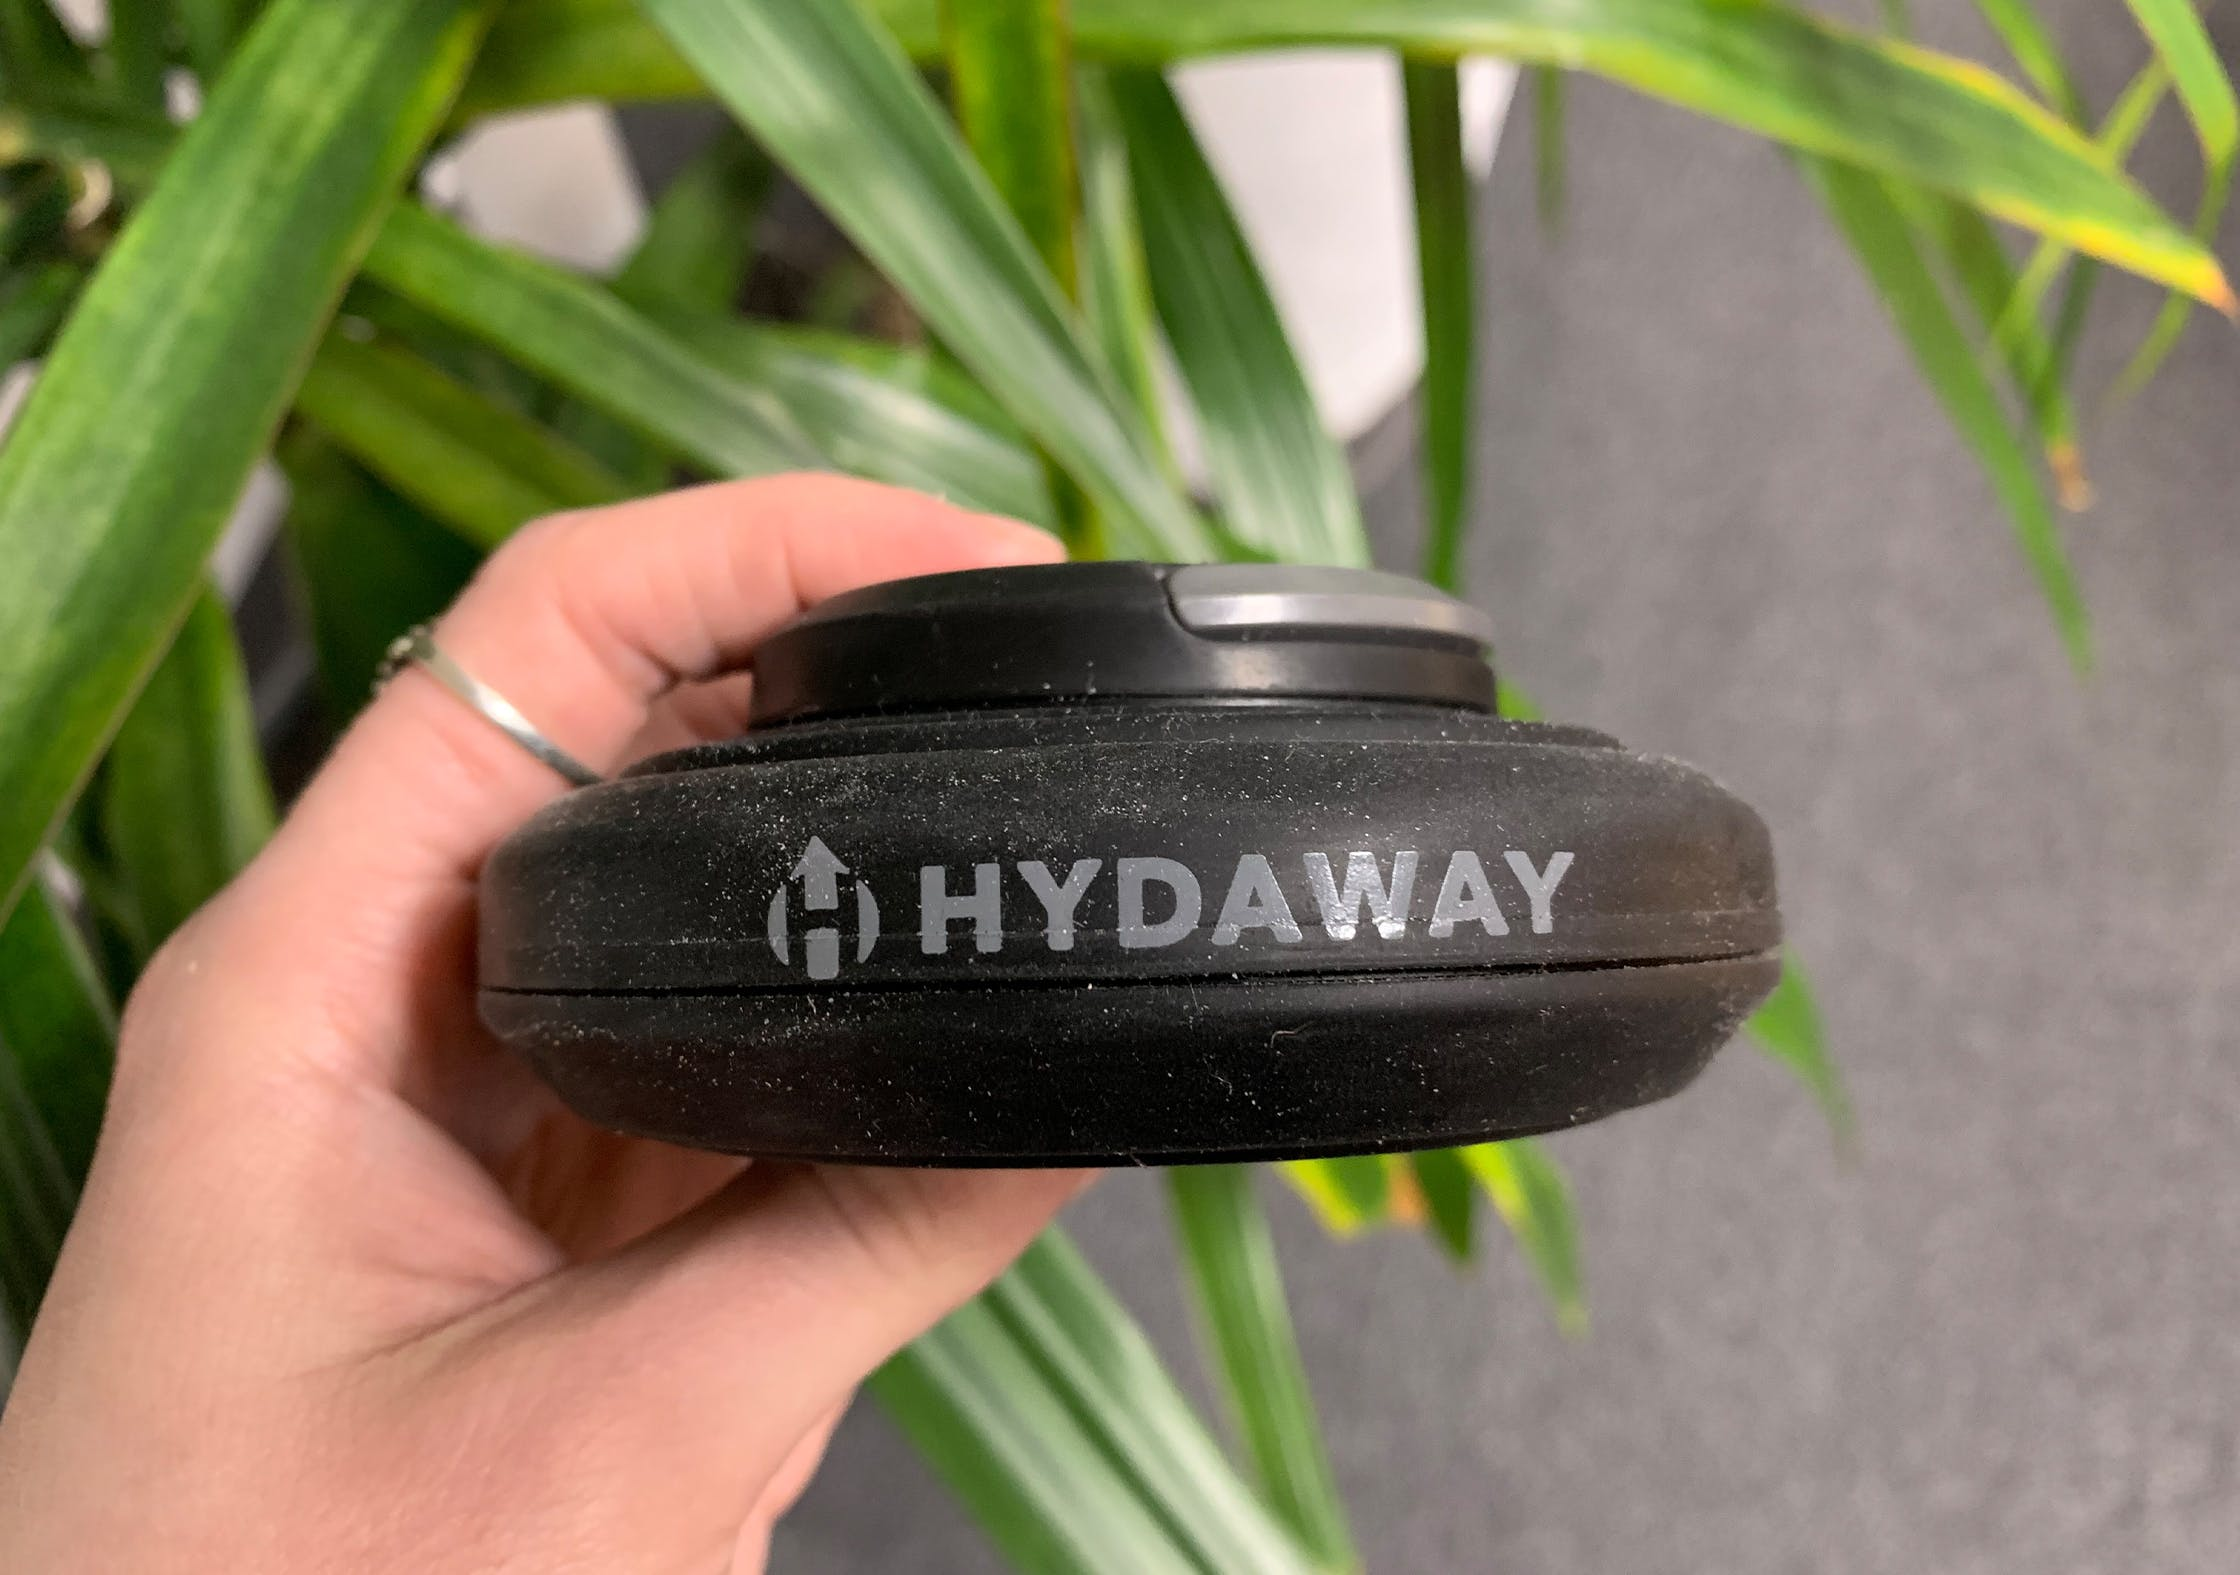 Hydaway 18oz Collapsible Water Bottle Fully Collapsed With Dust